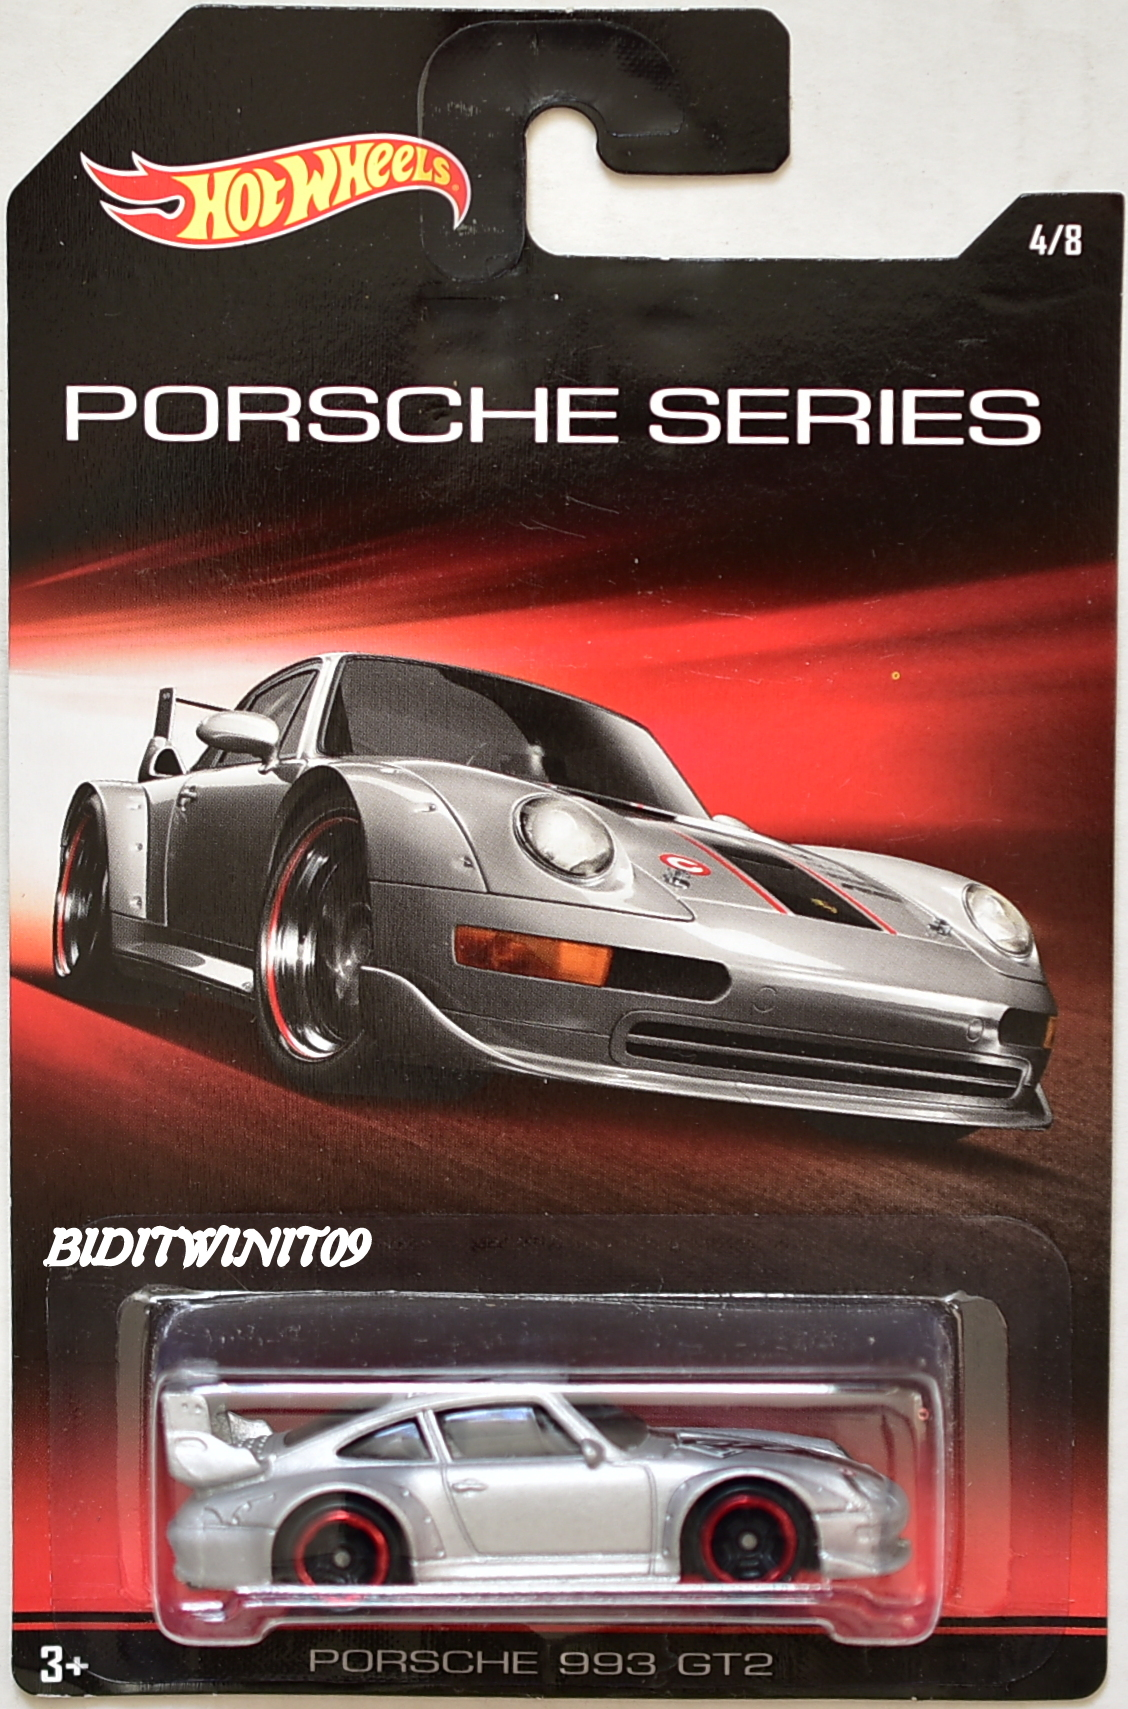 HOT WHEELS 2015 PORSCHE SERIES - PORSCHE 993 GT2 #4/8 SILVER E+